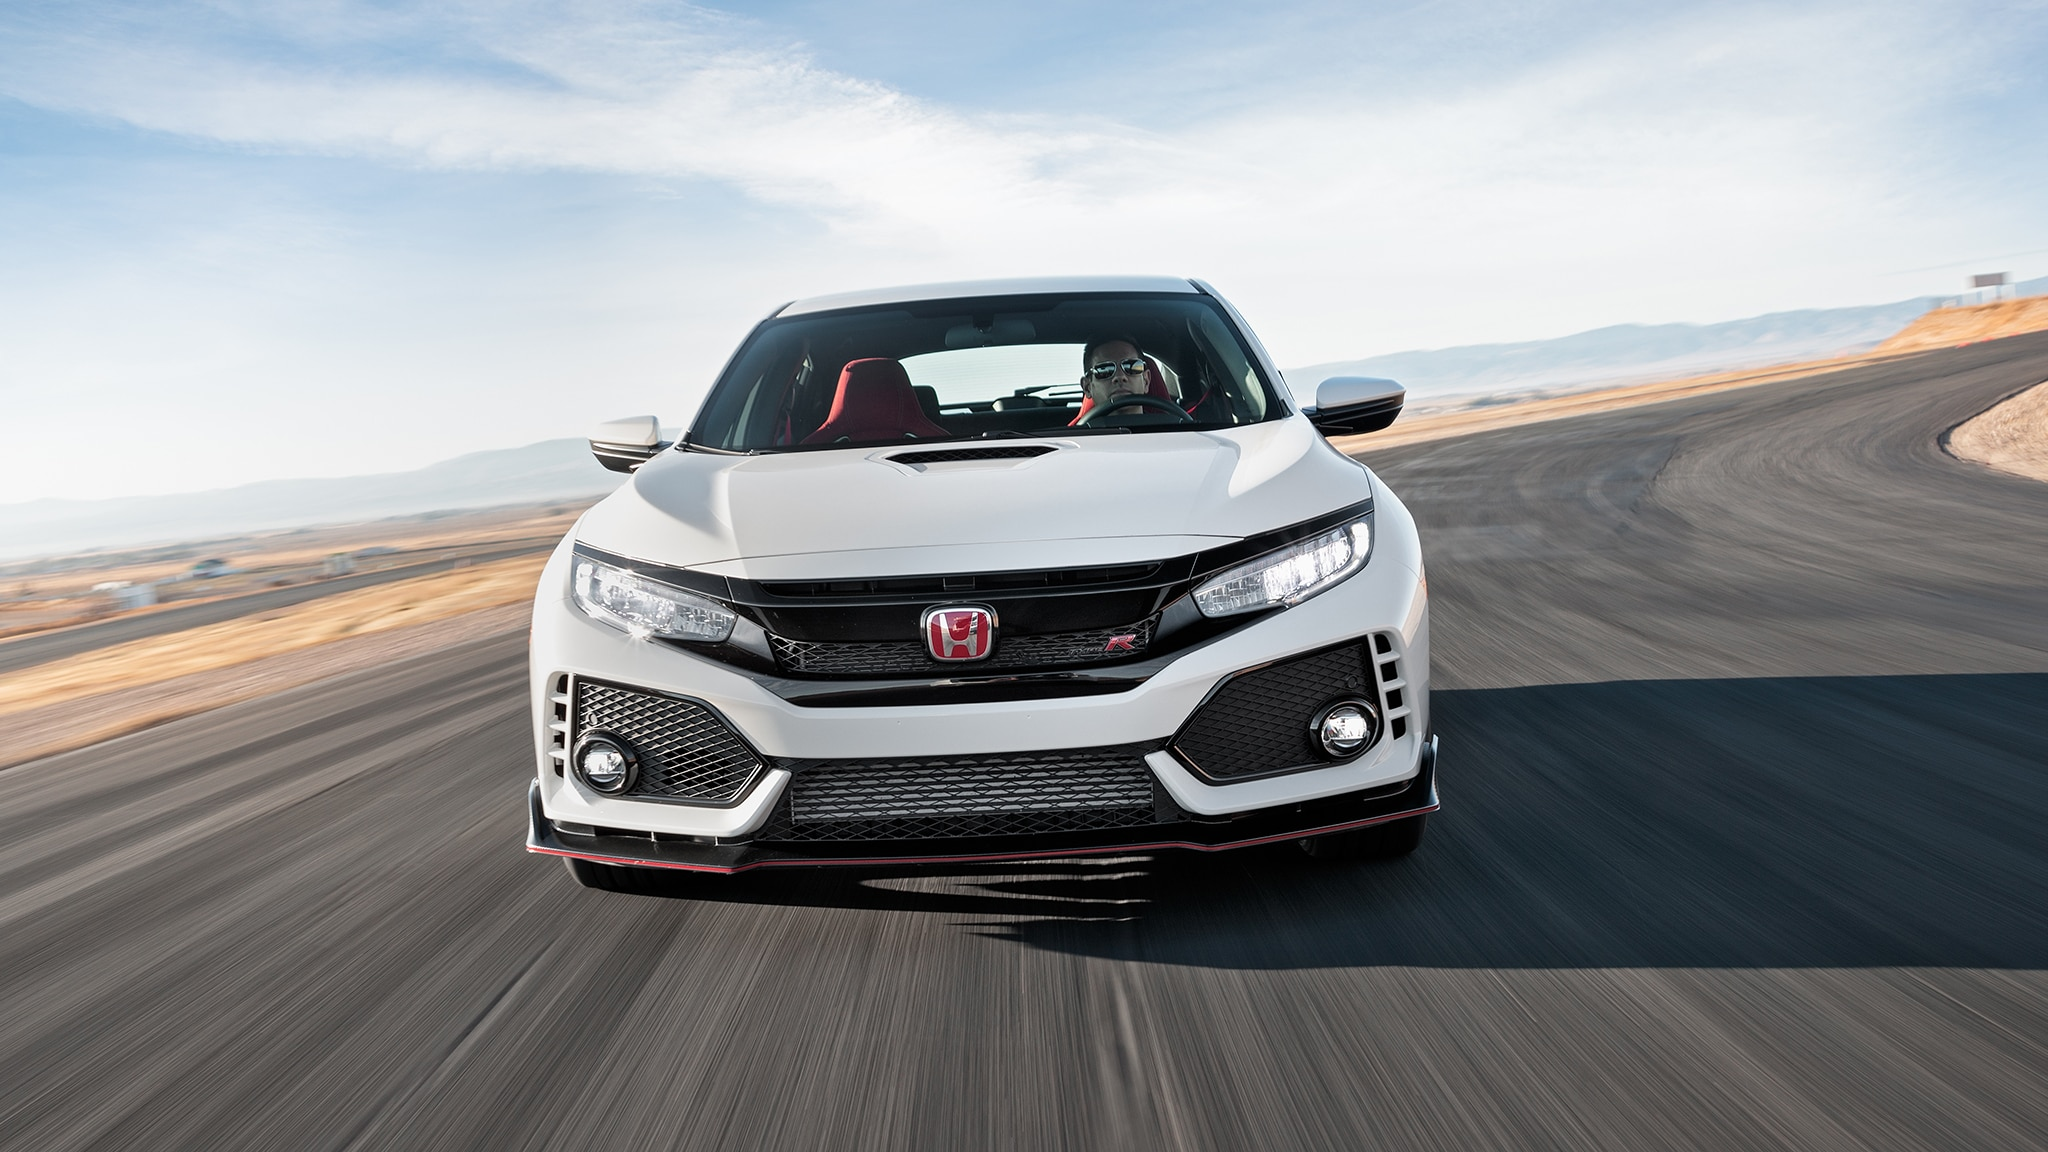 2017 Honda Civic Type R Four Seasons Update | Automobile